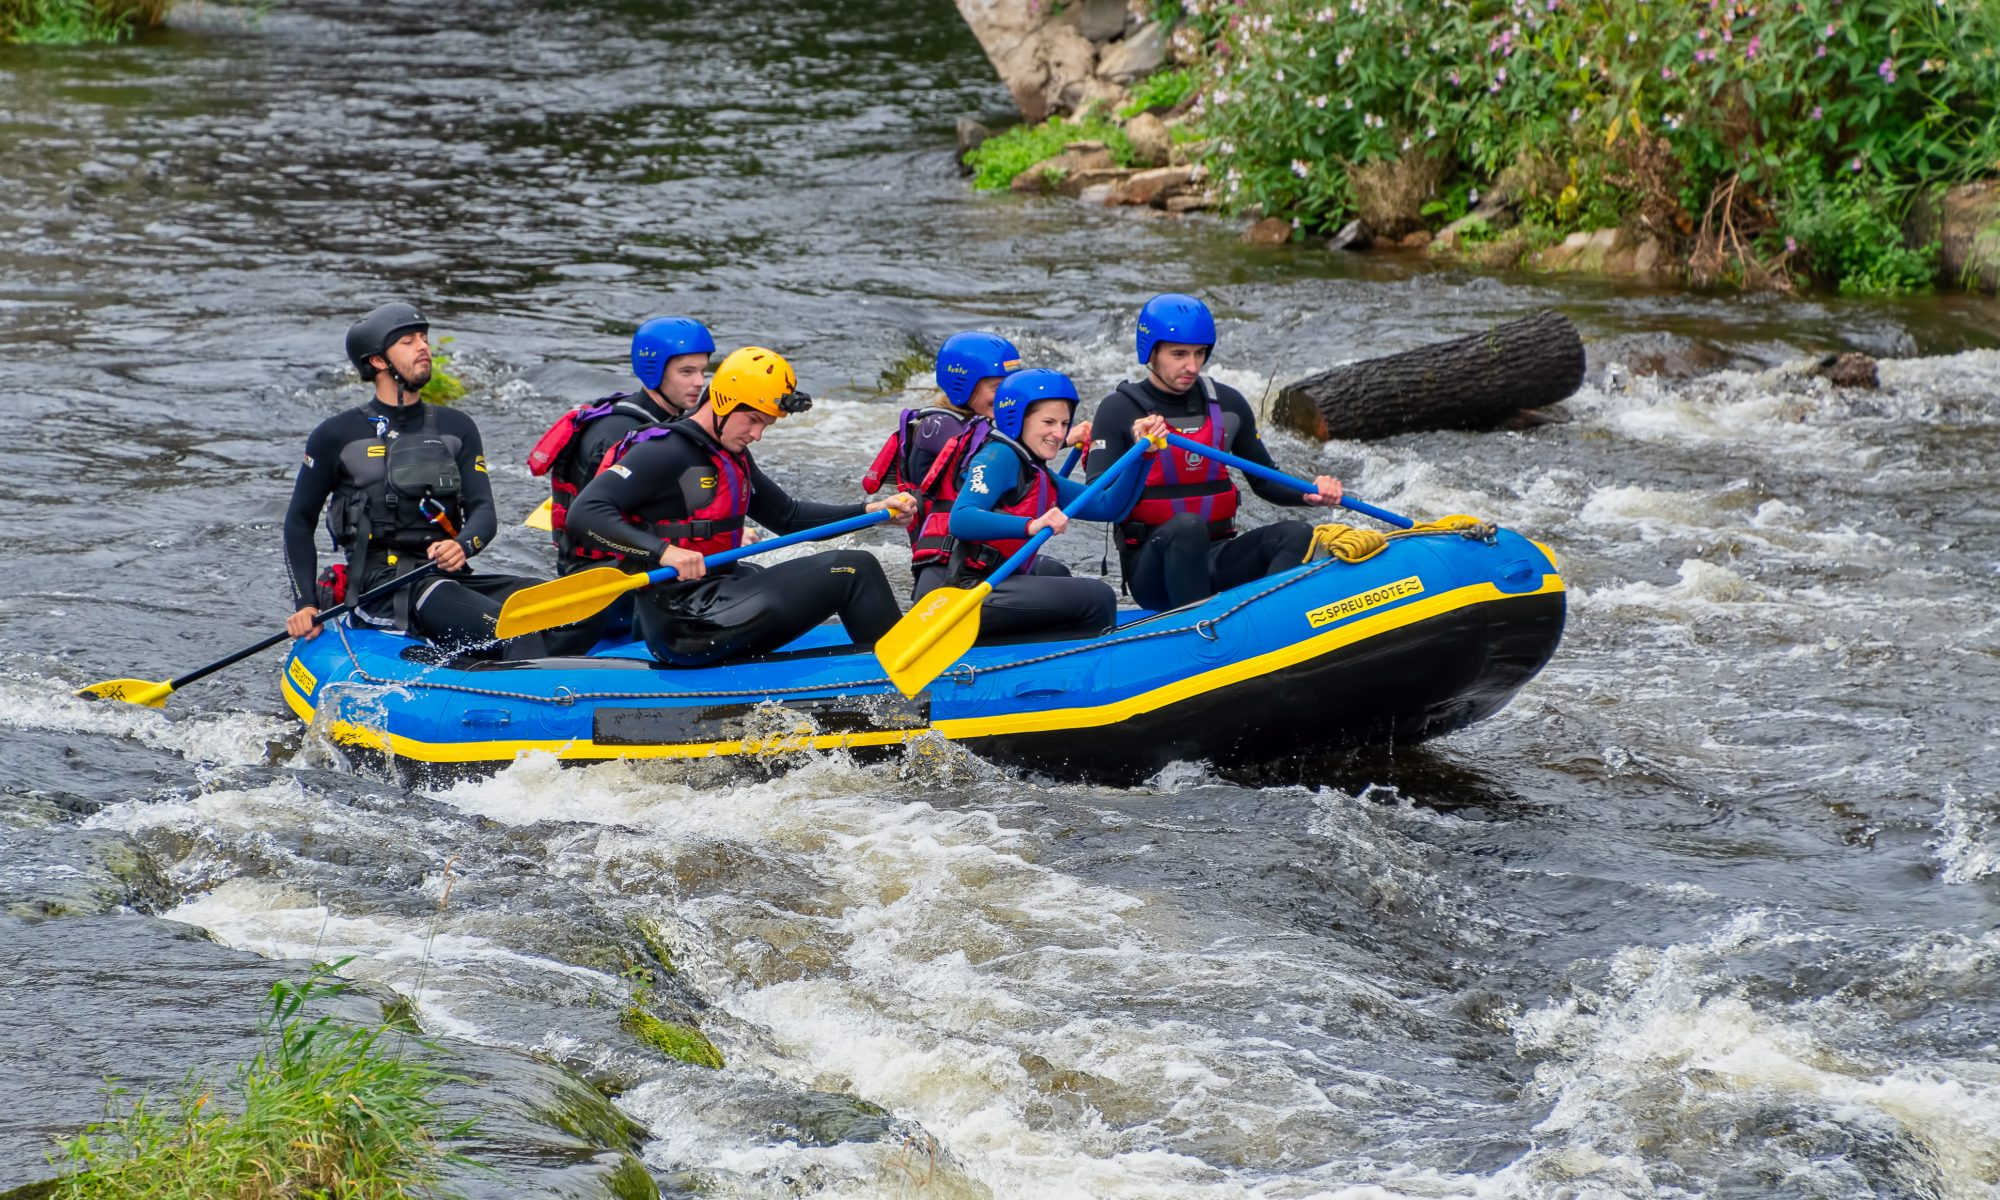 A group of people rafting along the River Dee in Wales.